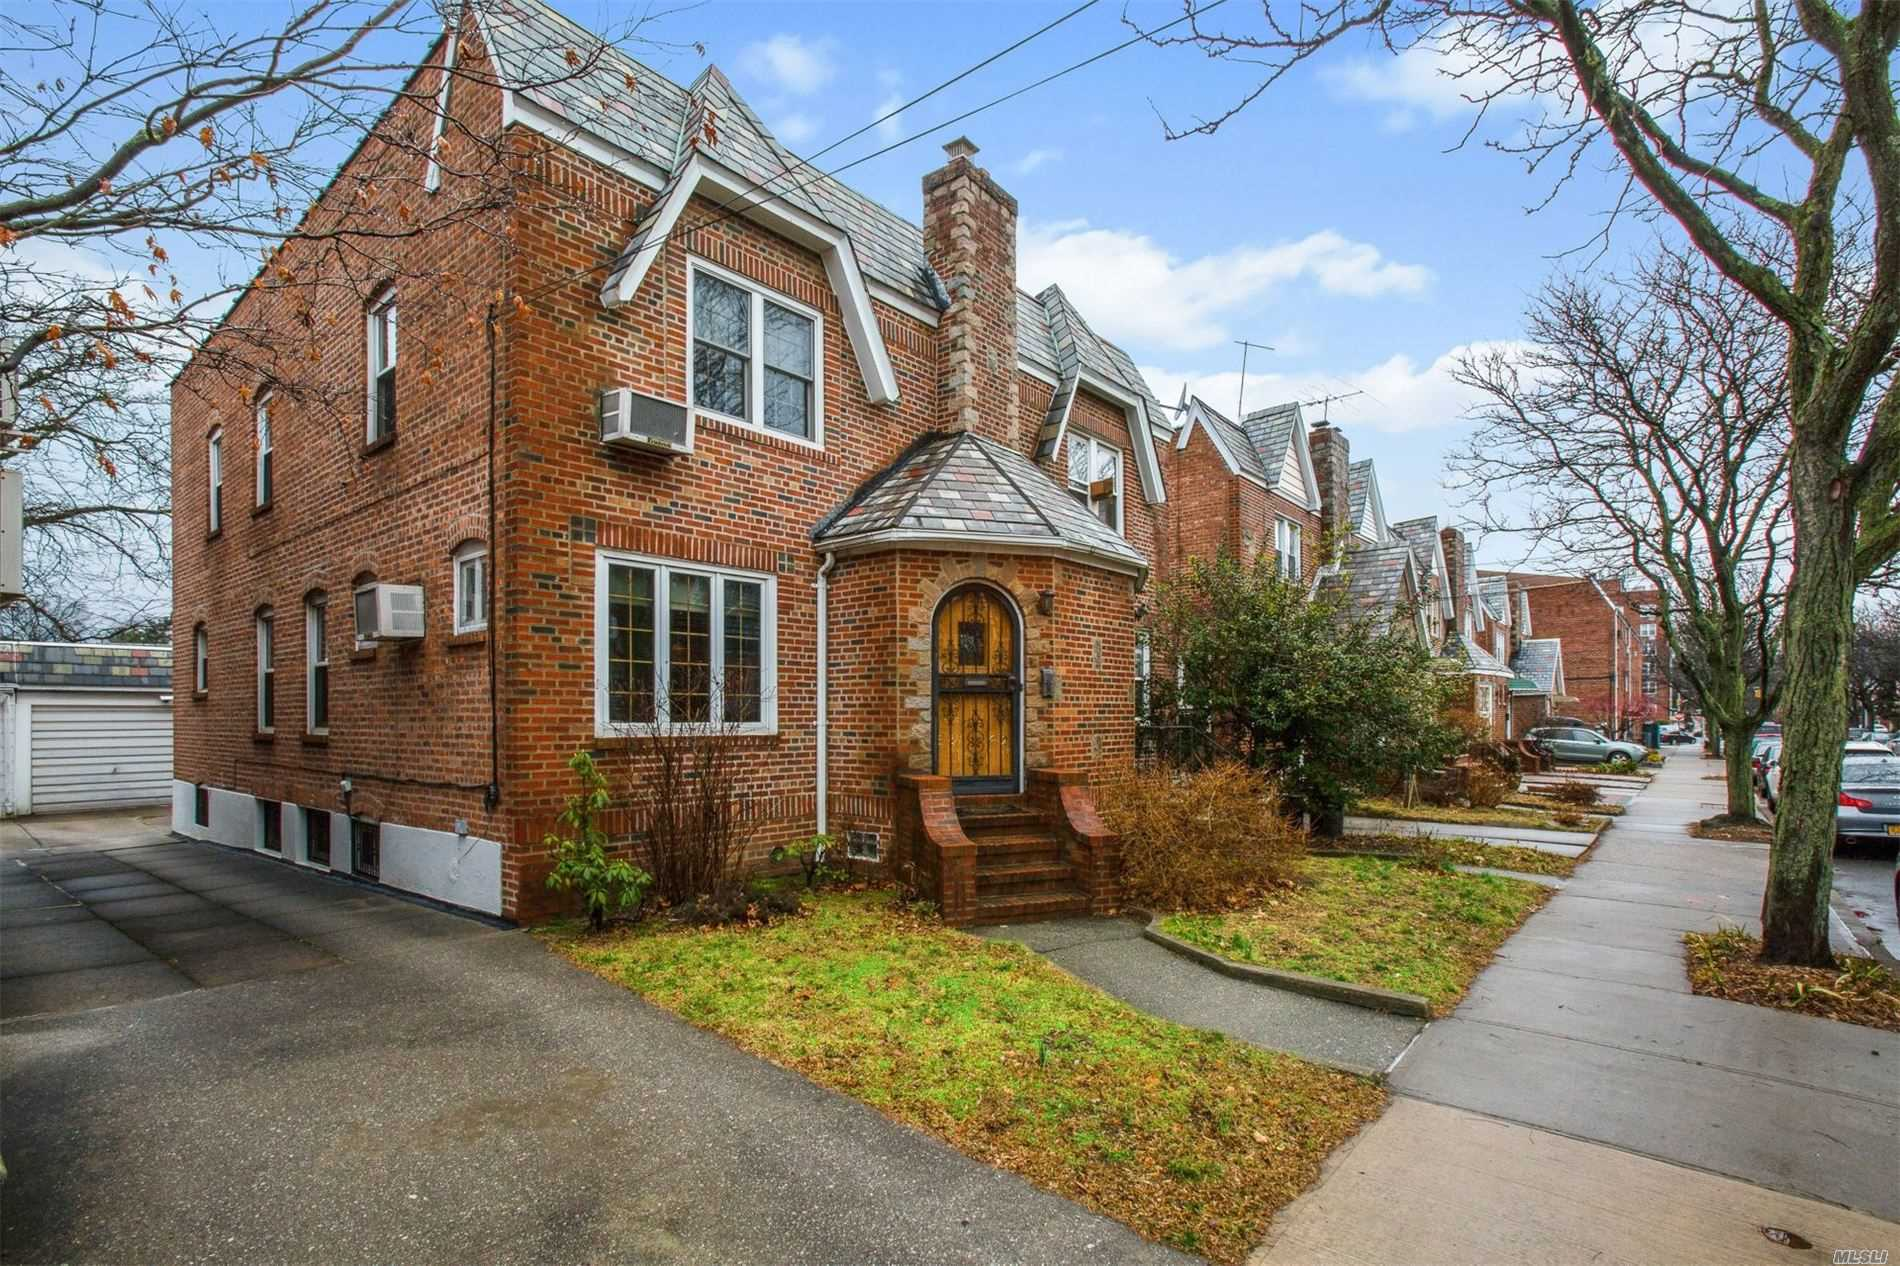 Charm, Community, Convenience!!! Nestled In The Beautiful Enclave Of Rego Park, This Charming Tudor Is Situated On One Of The Town's Prettiest Tree-Lined Streets, Offering You An Excellent Location, Desirable Layout, Rooms Proportionate In Size & Great Value! Additional Features Include Jacuzzi Bath, Recreation Space And Laundry, 1 Car Garage, A Rear Porch & Garden! A Must See For This Immaculate Home!